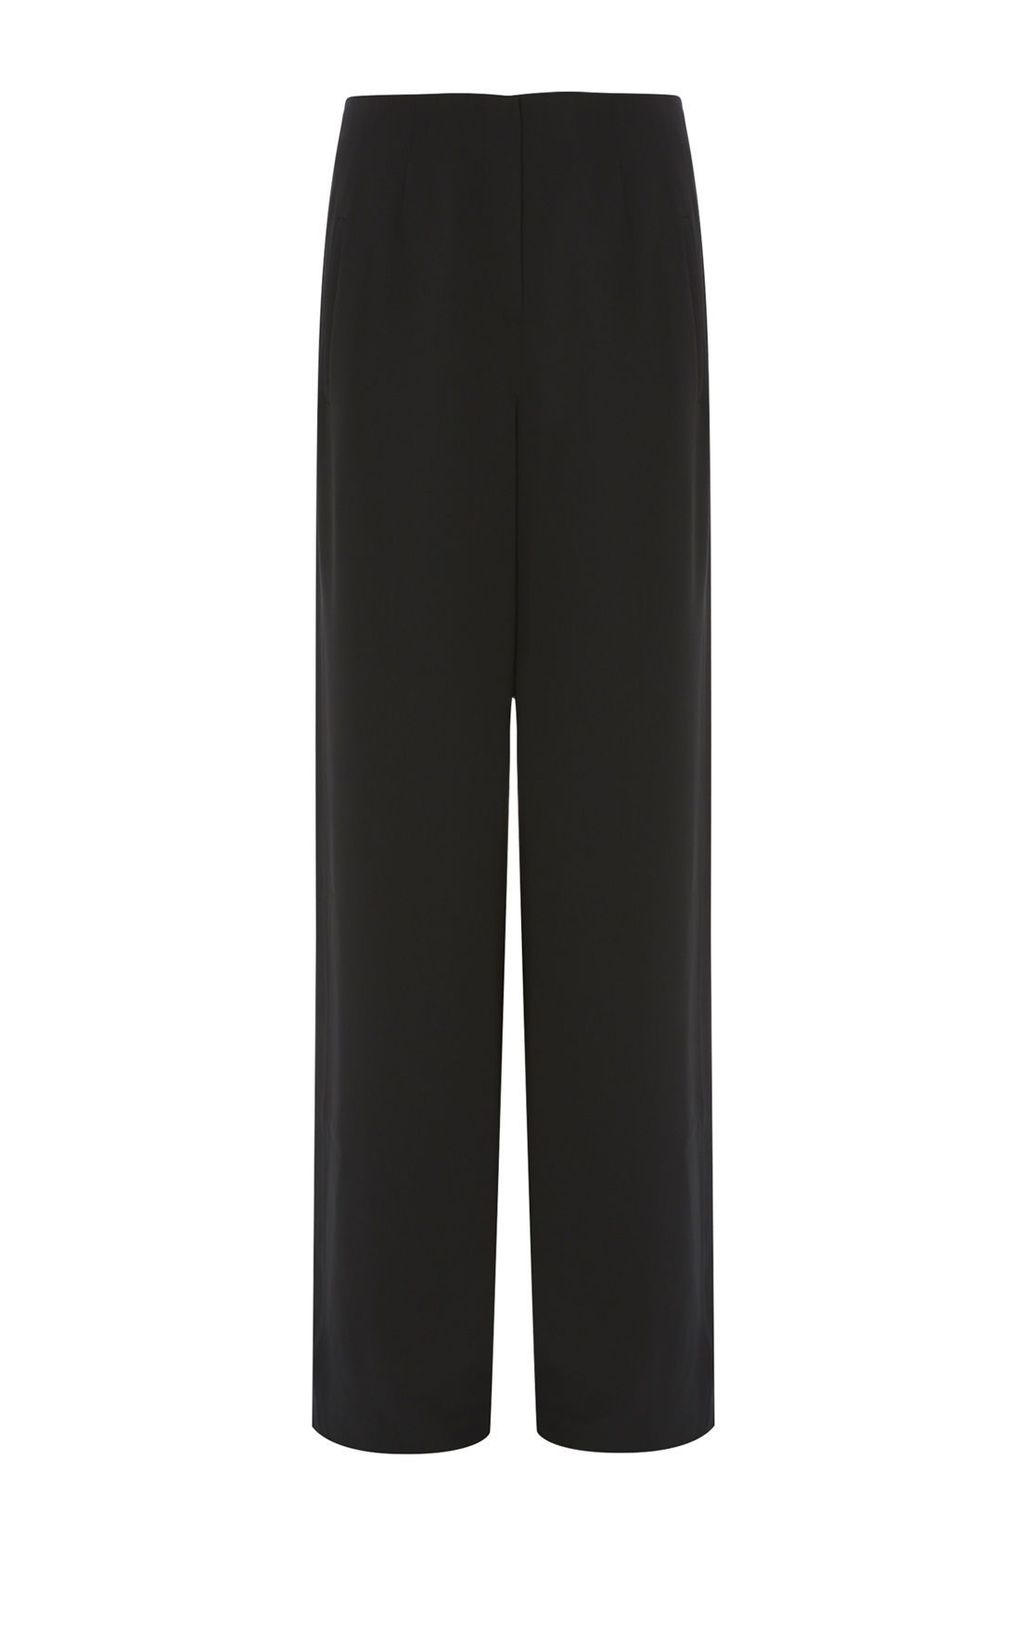 Wide Leg Trousers, Black - length: standard; pattern: plain; style: palazzo; waist: mid/regular rise; predominant colour: black; occasions: work; fibres: polyester/polyamide - 100%; texture group: crepes; fit: wide leg; pattern type: fabric; season: s/s 2016